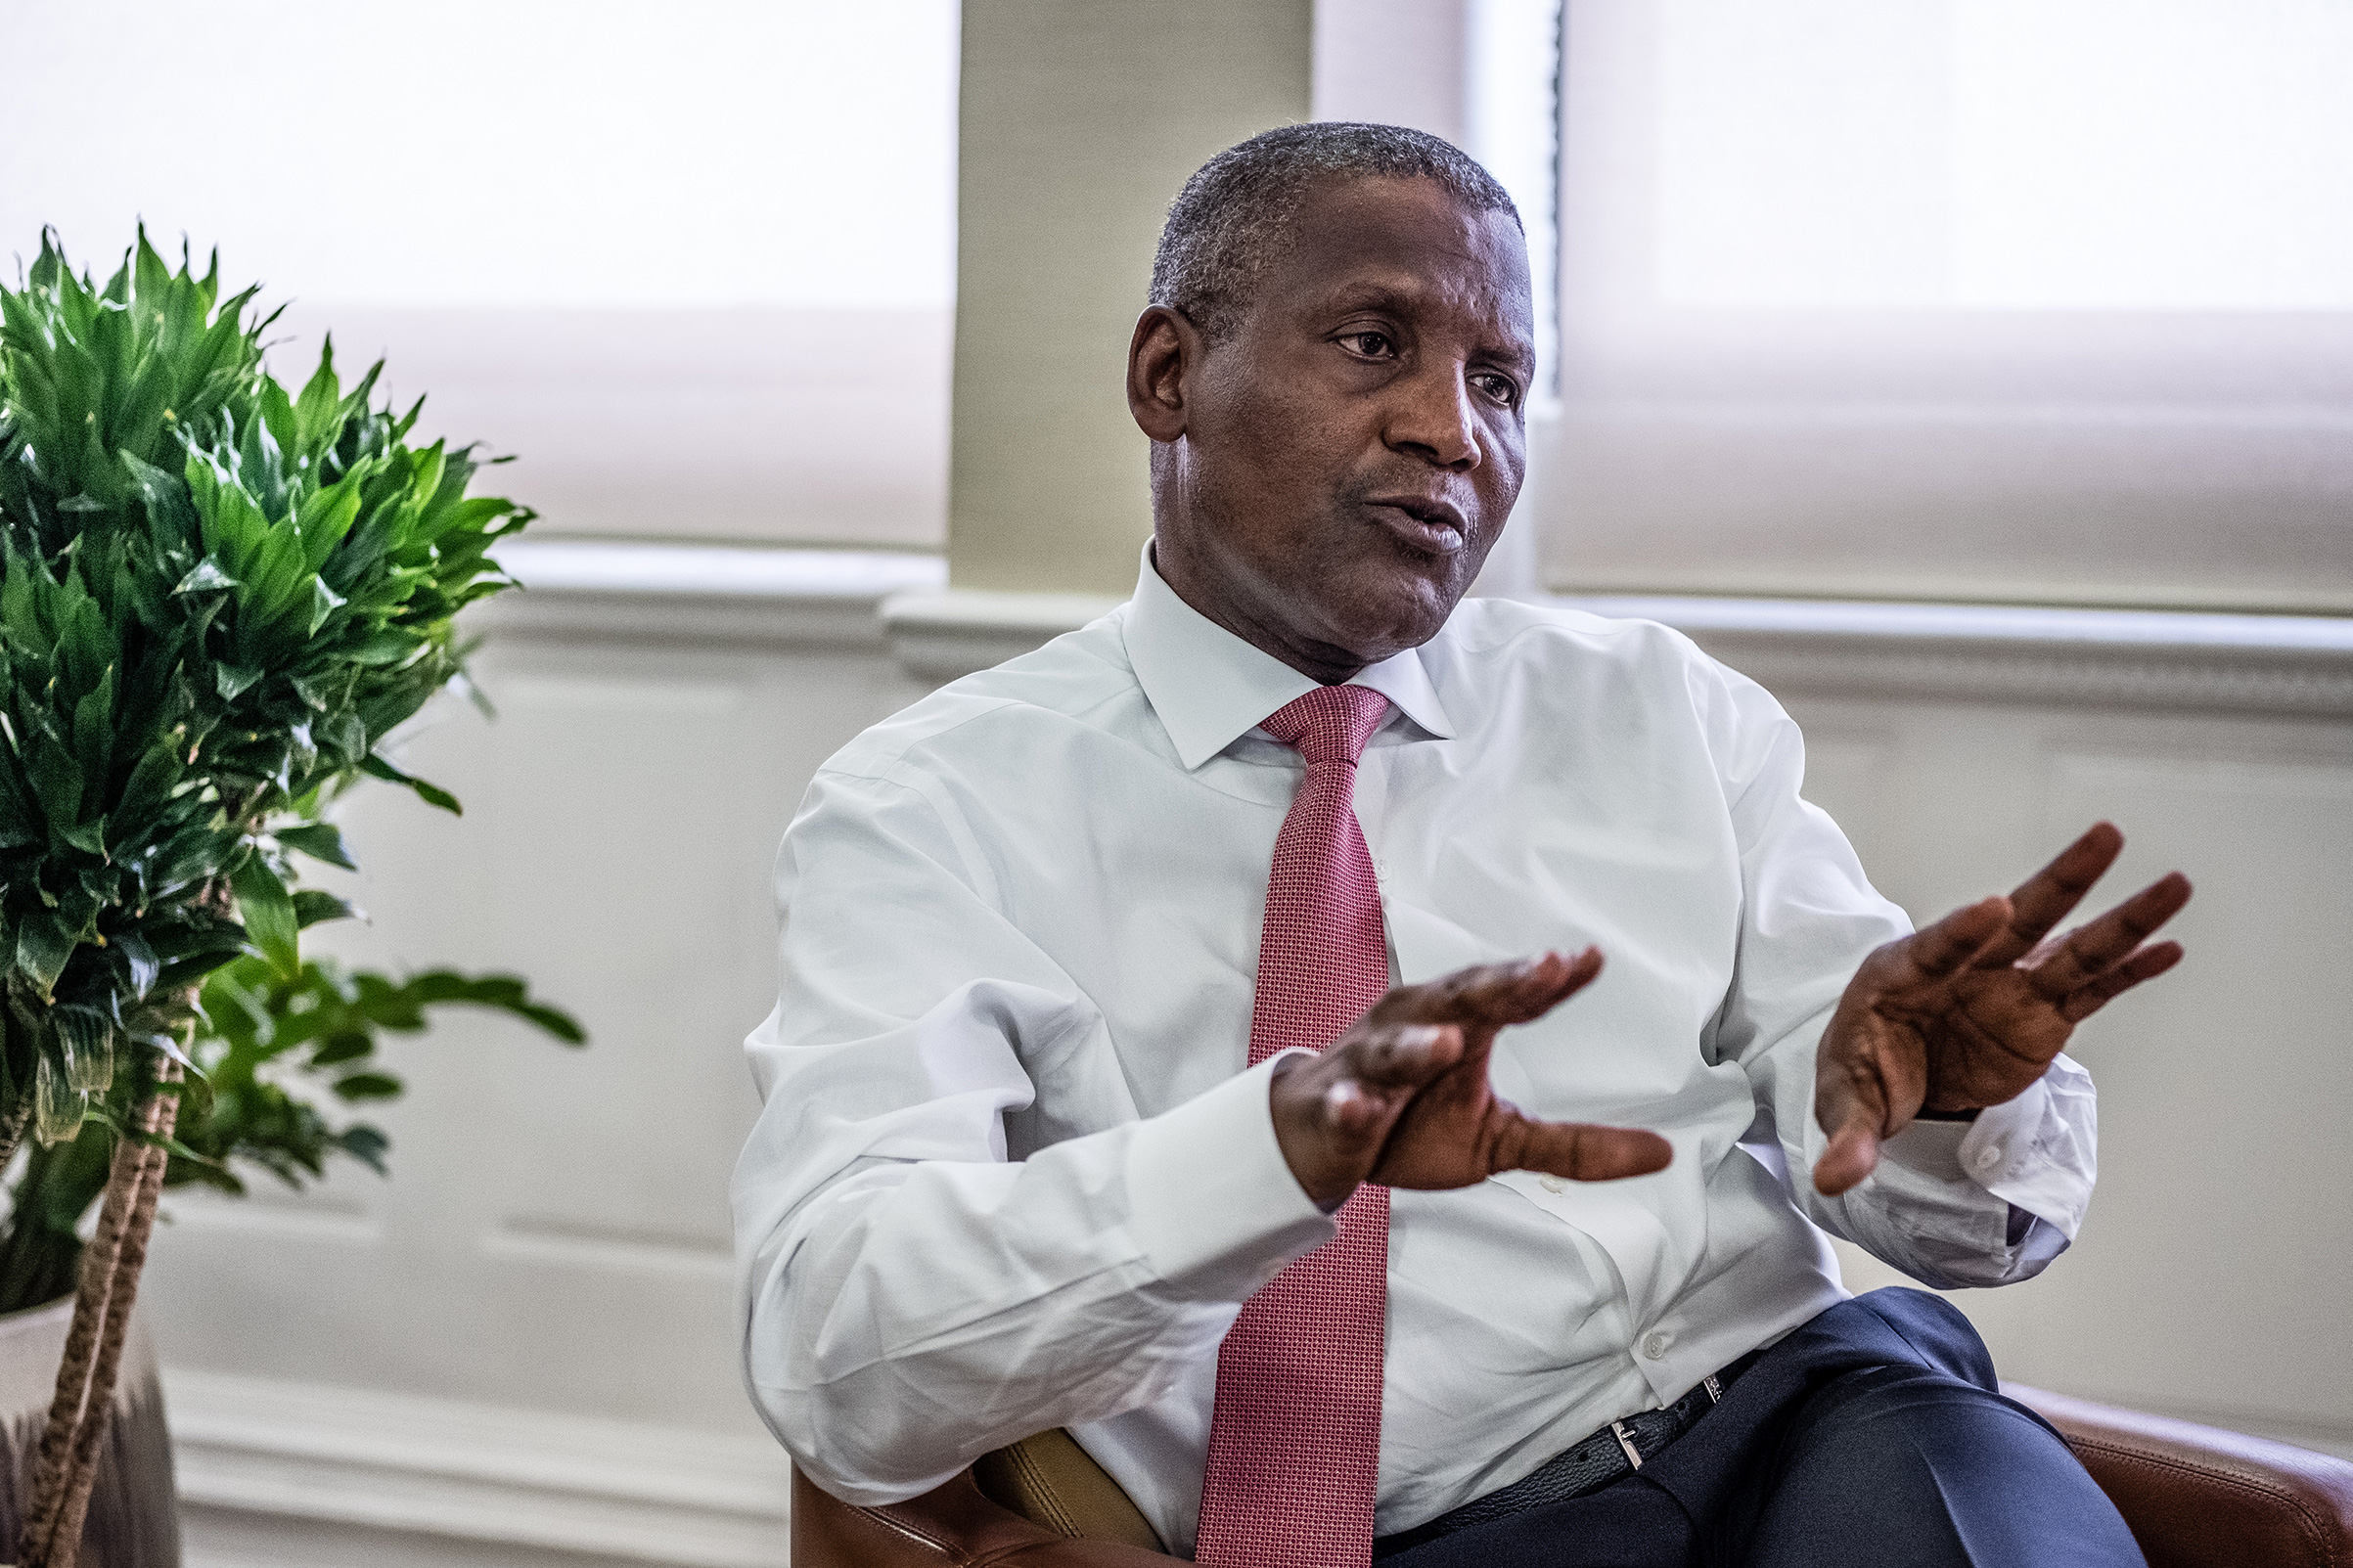 See The 5 Most Richest Families In Nigeria. 1. The Dangote Family: This is a well known name in Nigeria and across African. Aliko Dangote is the richest